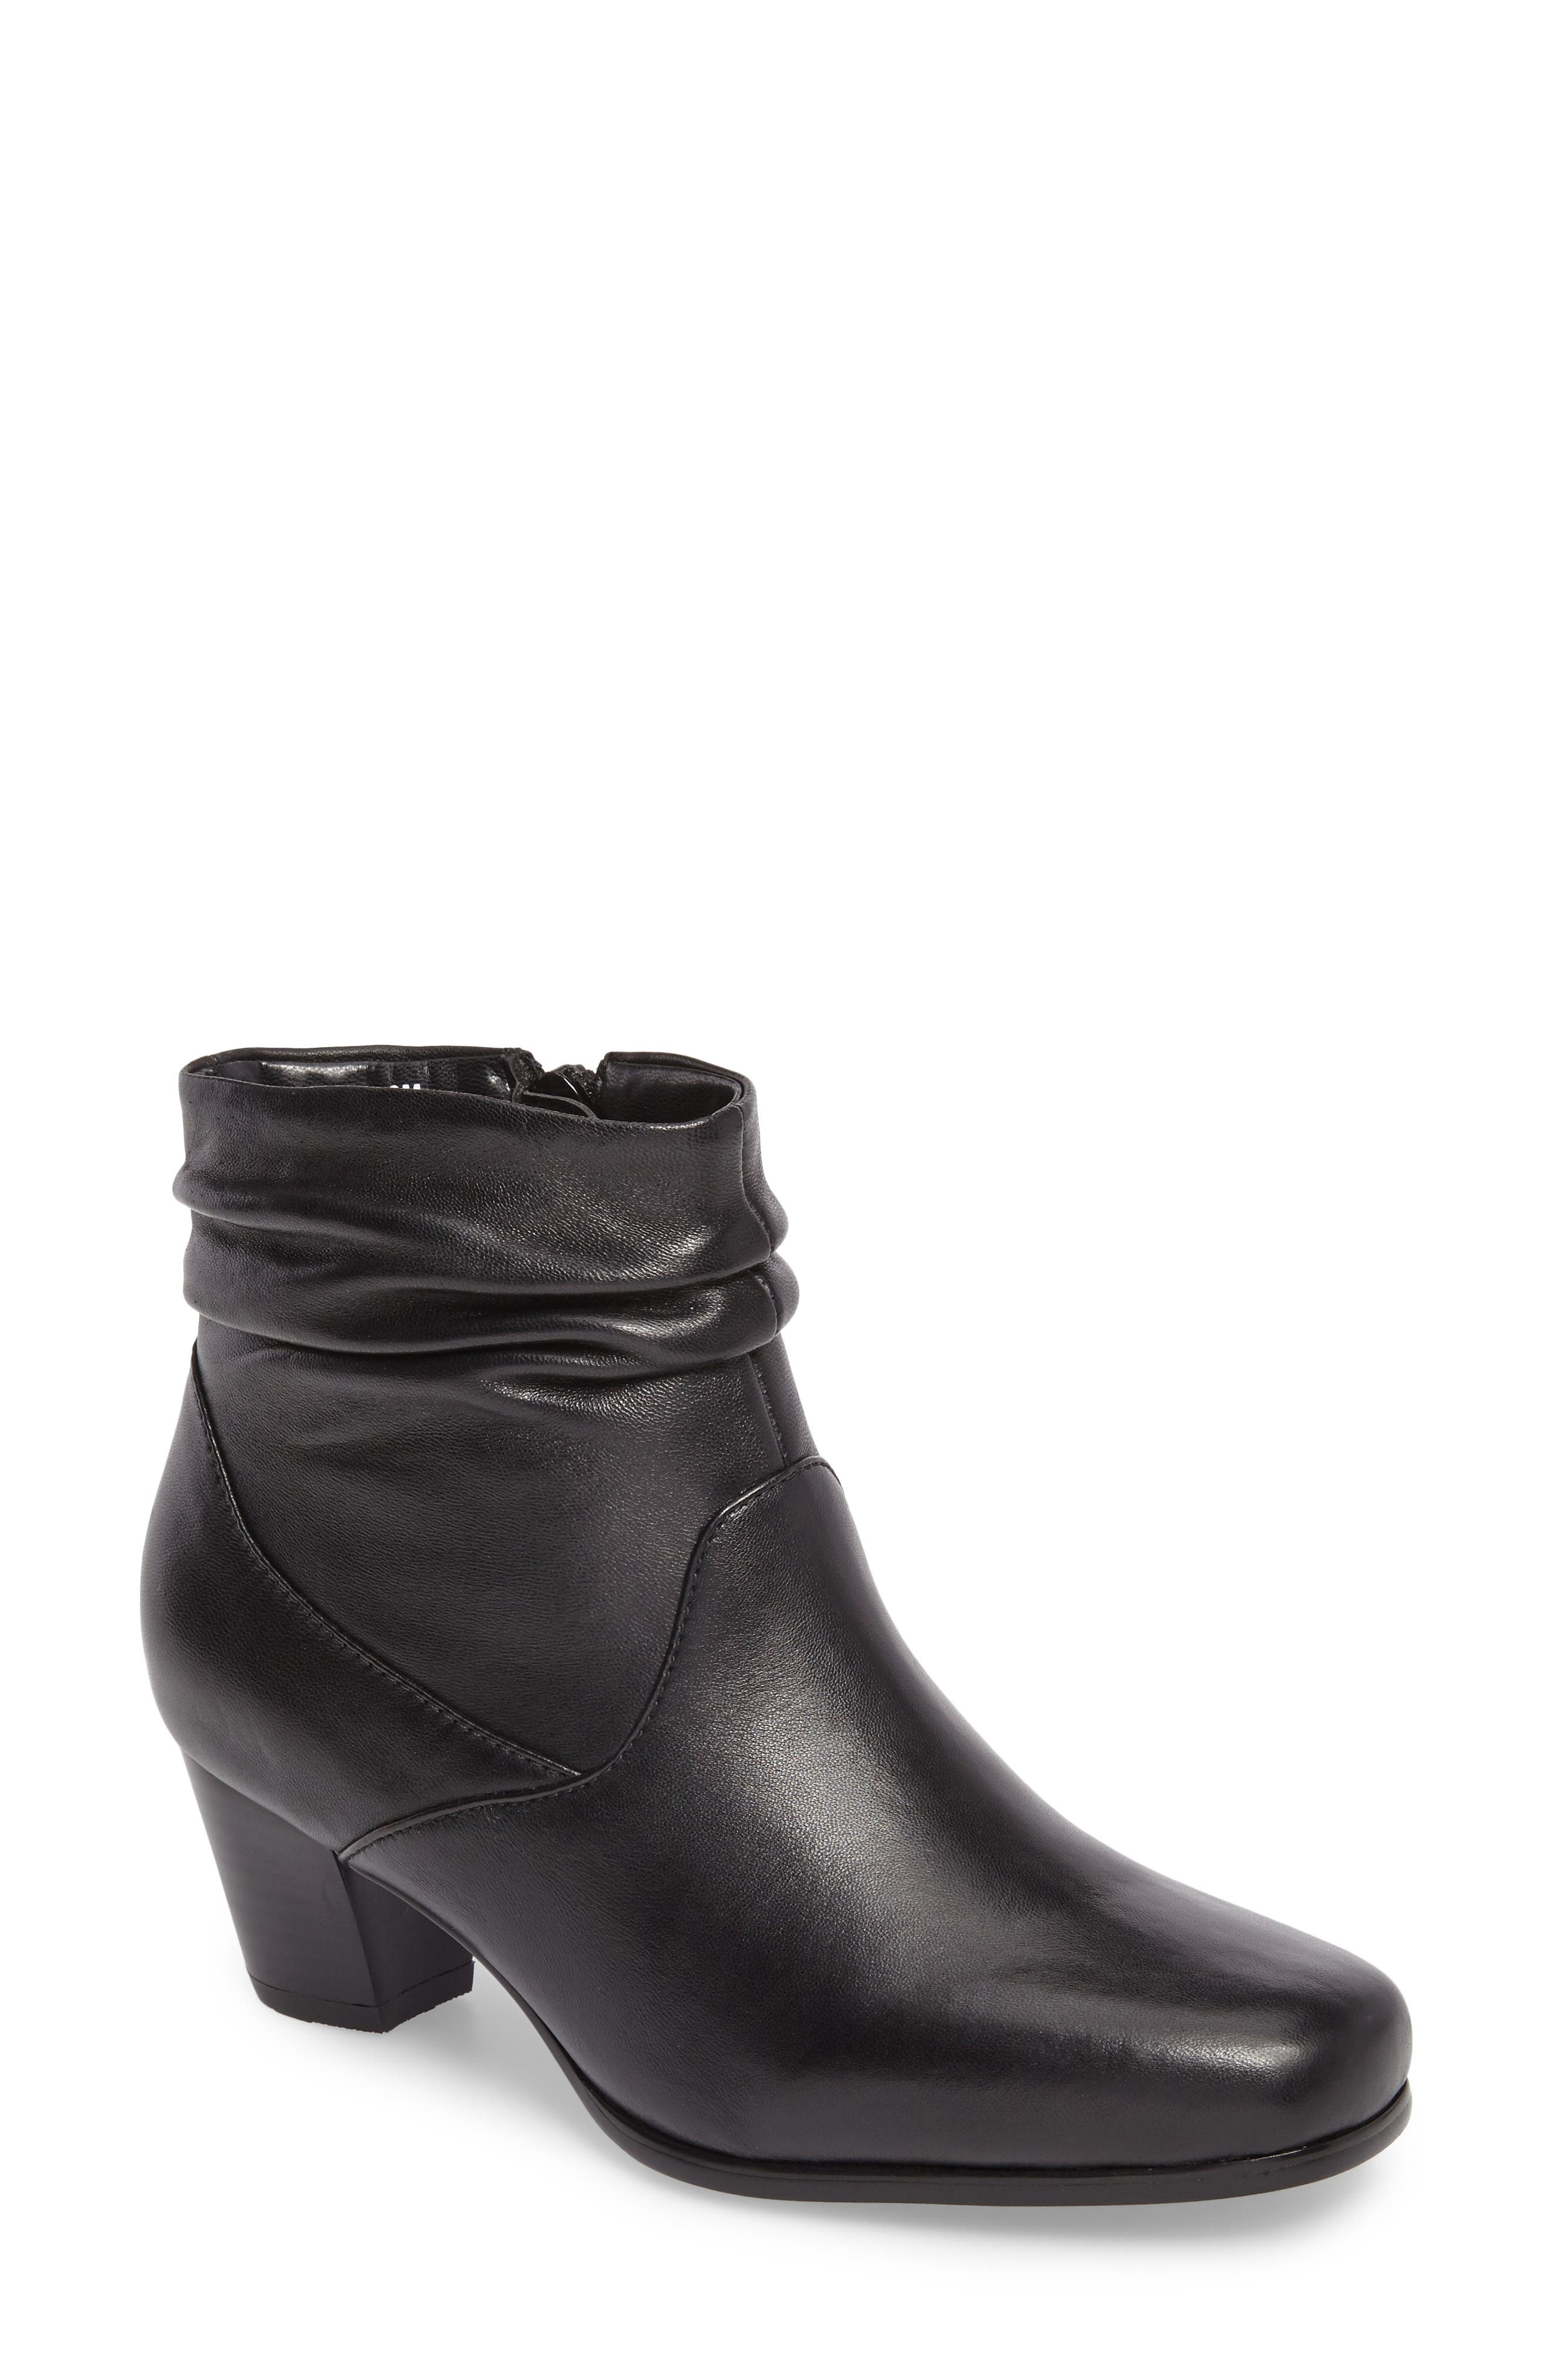 Shadown Bootie,                             Main thumbnail 1, color,                             BLACK LEATHER